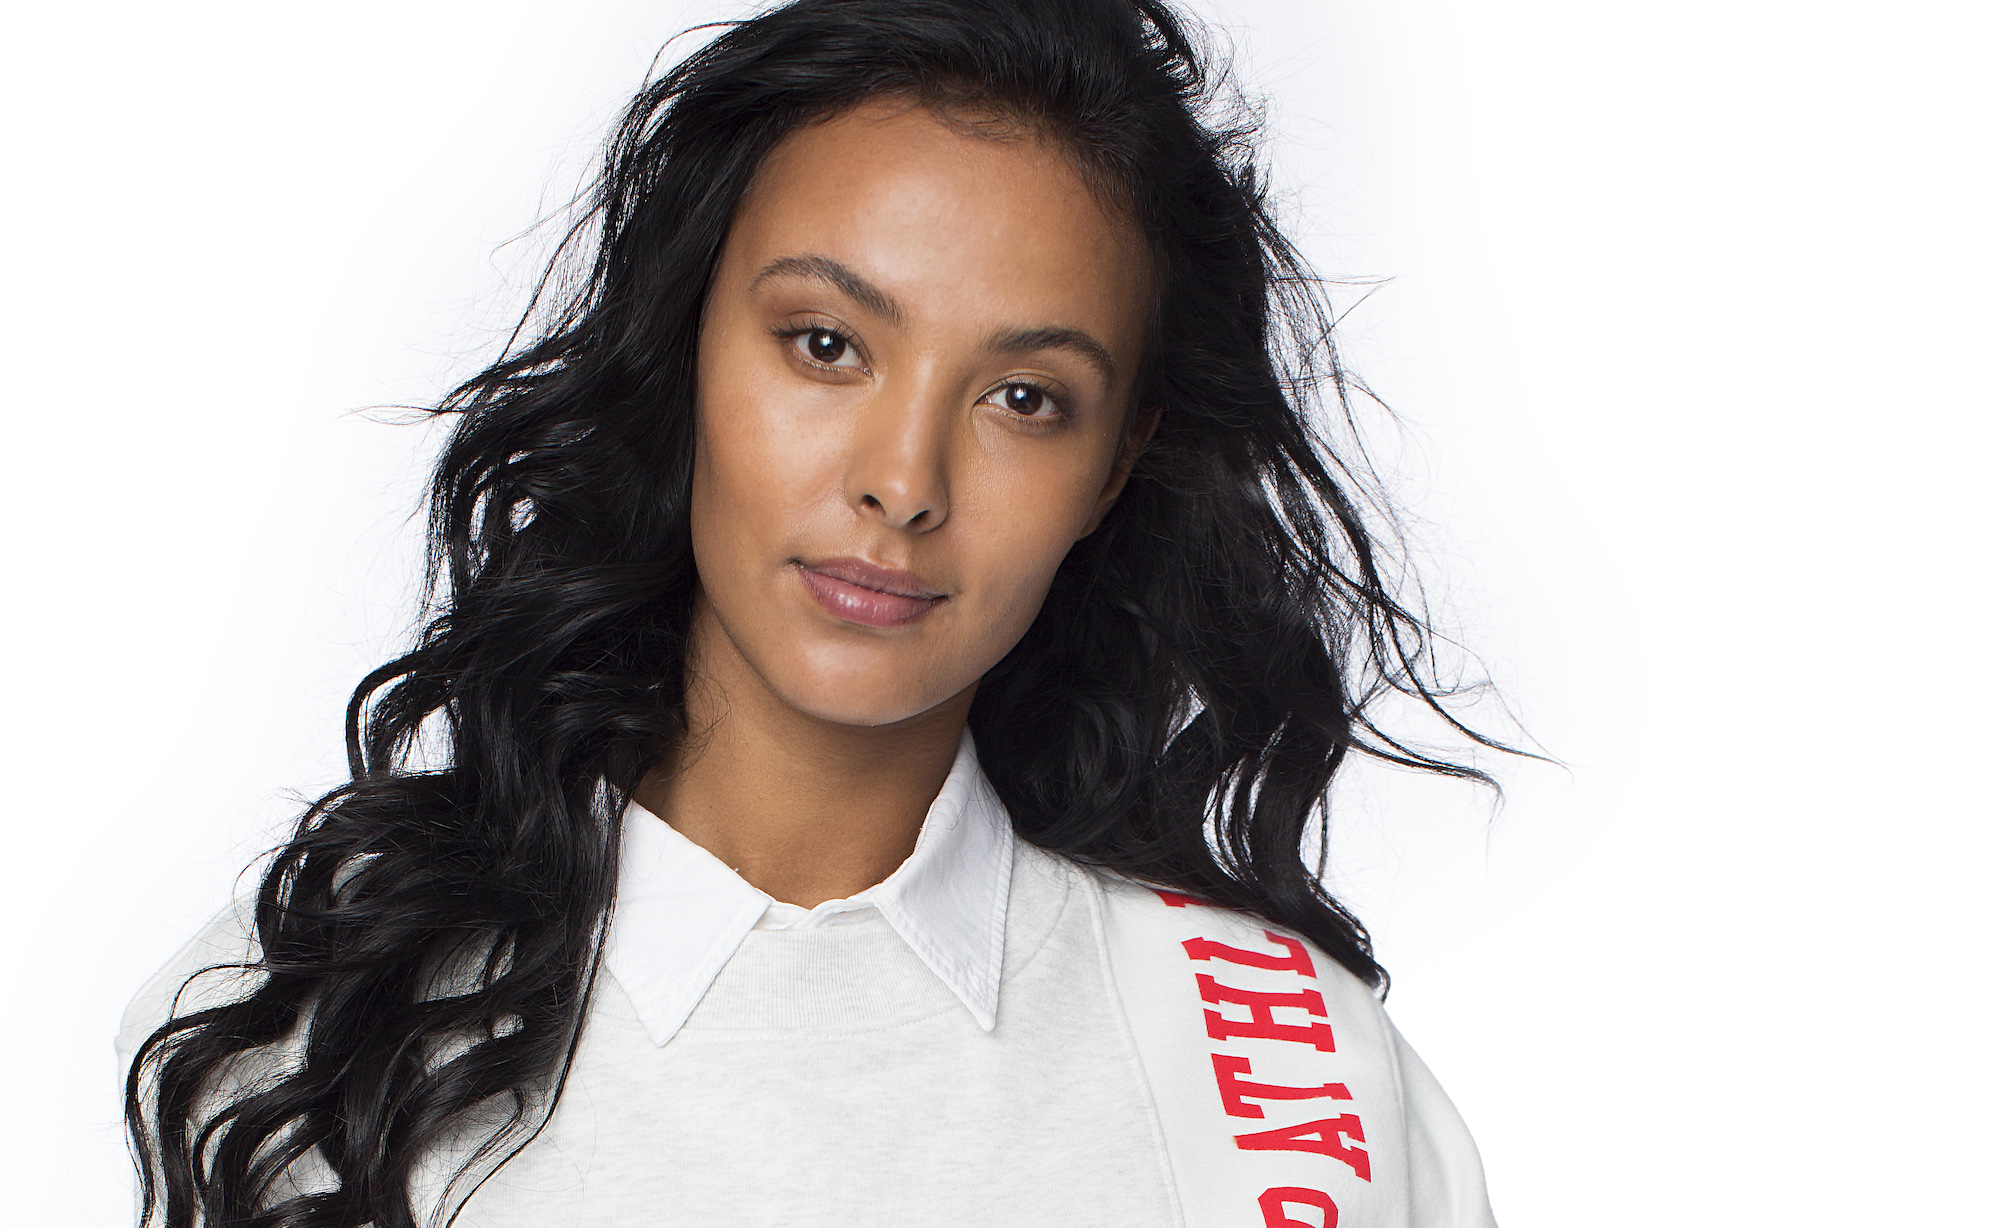 Maya Jama: Growing up, I never saw TV presenters that were like me.'